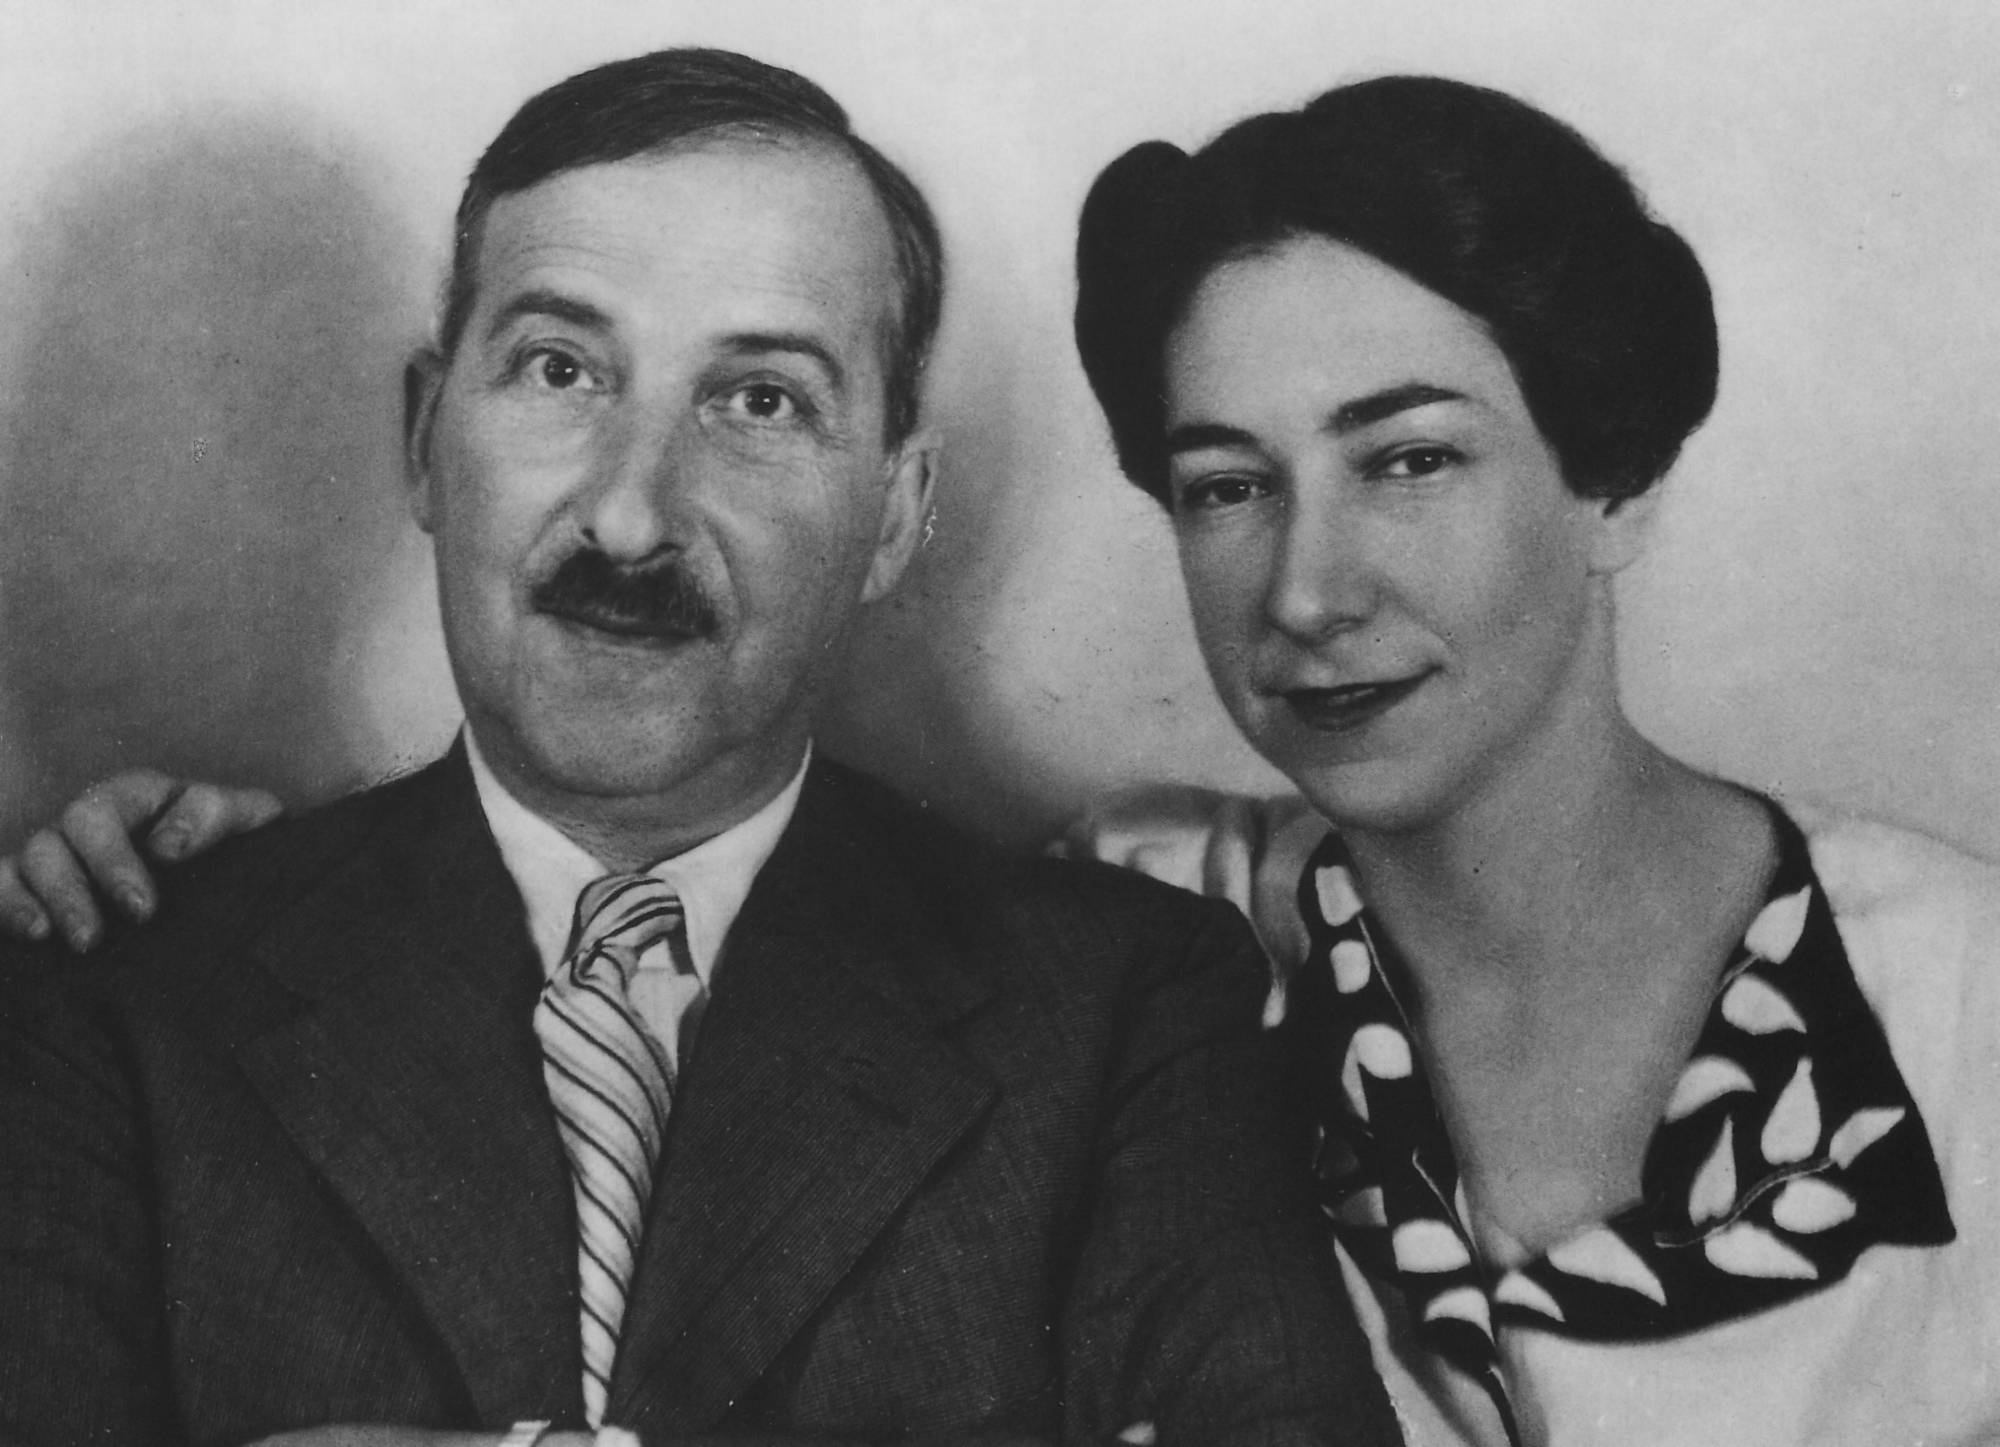 Stefan Zweig and Lotte Zweig-Bath